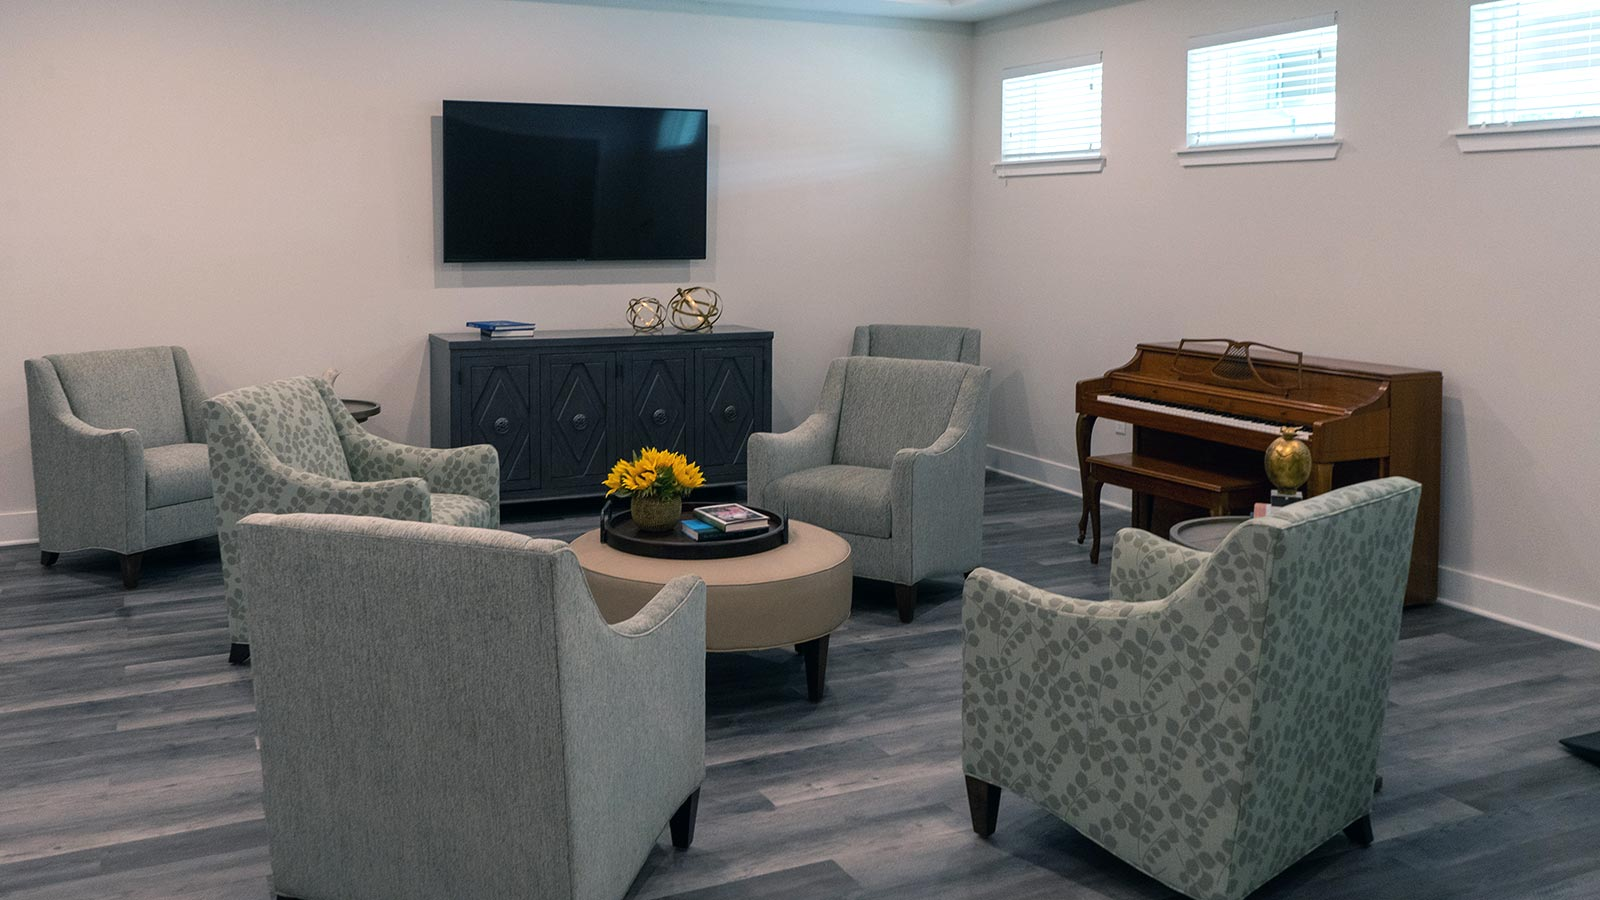 View Of Gathering Area With TV, Comfortable Chairs And Piano